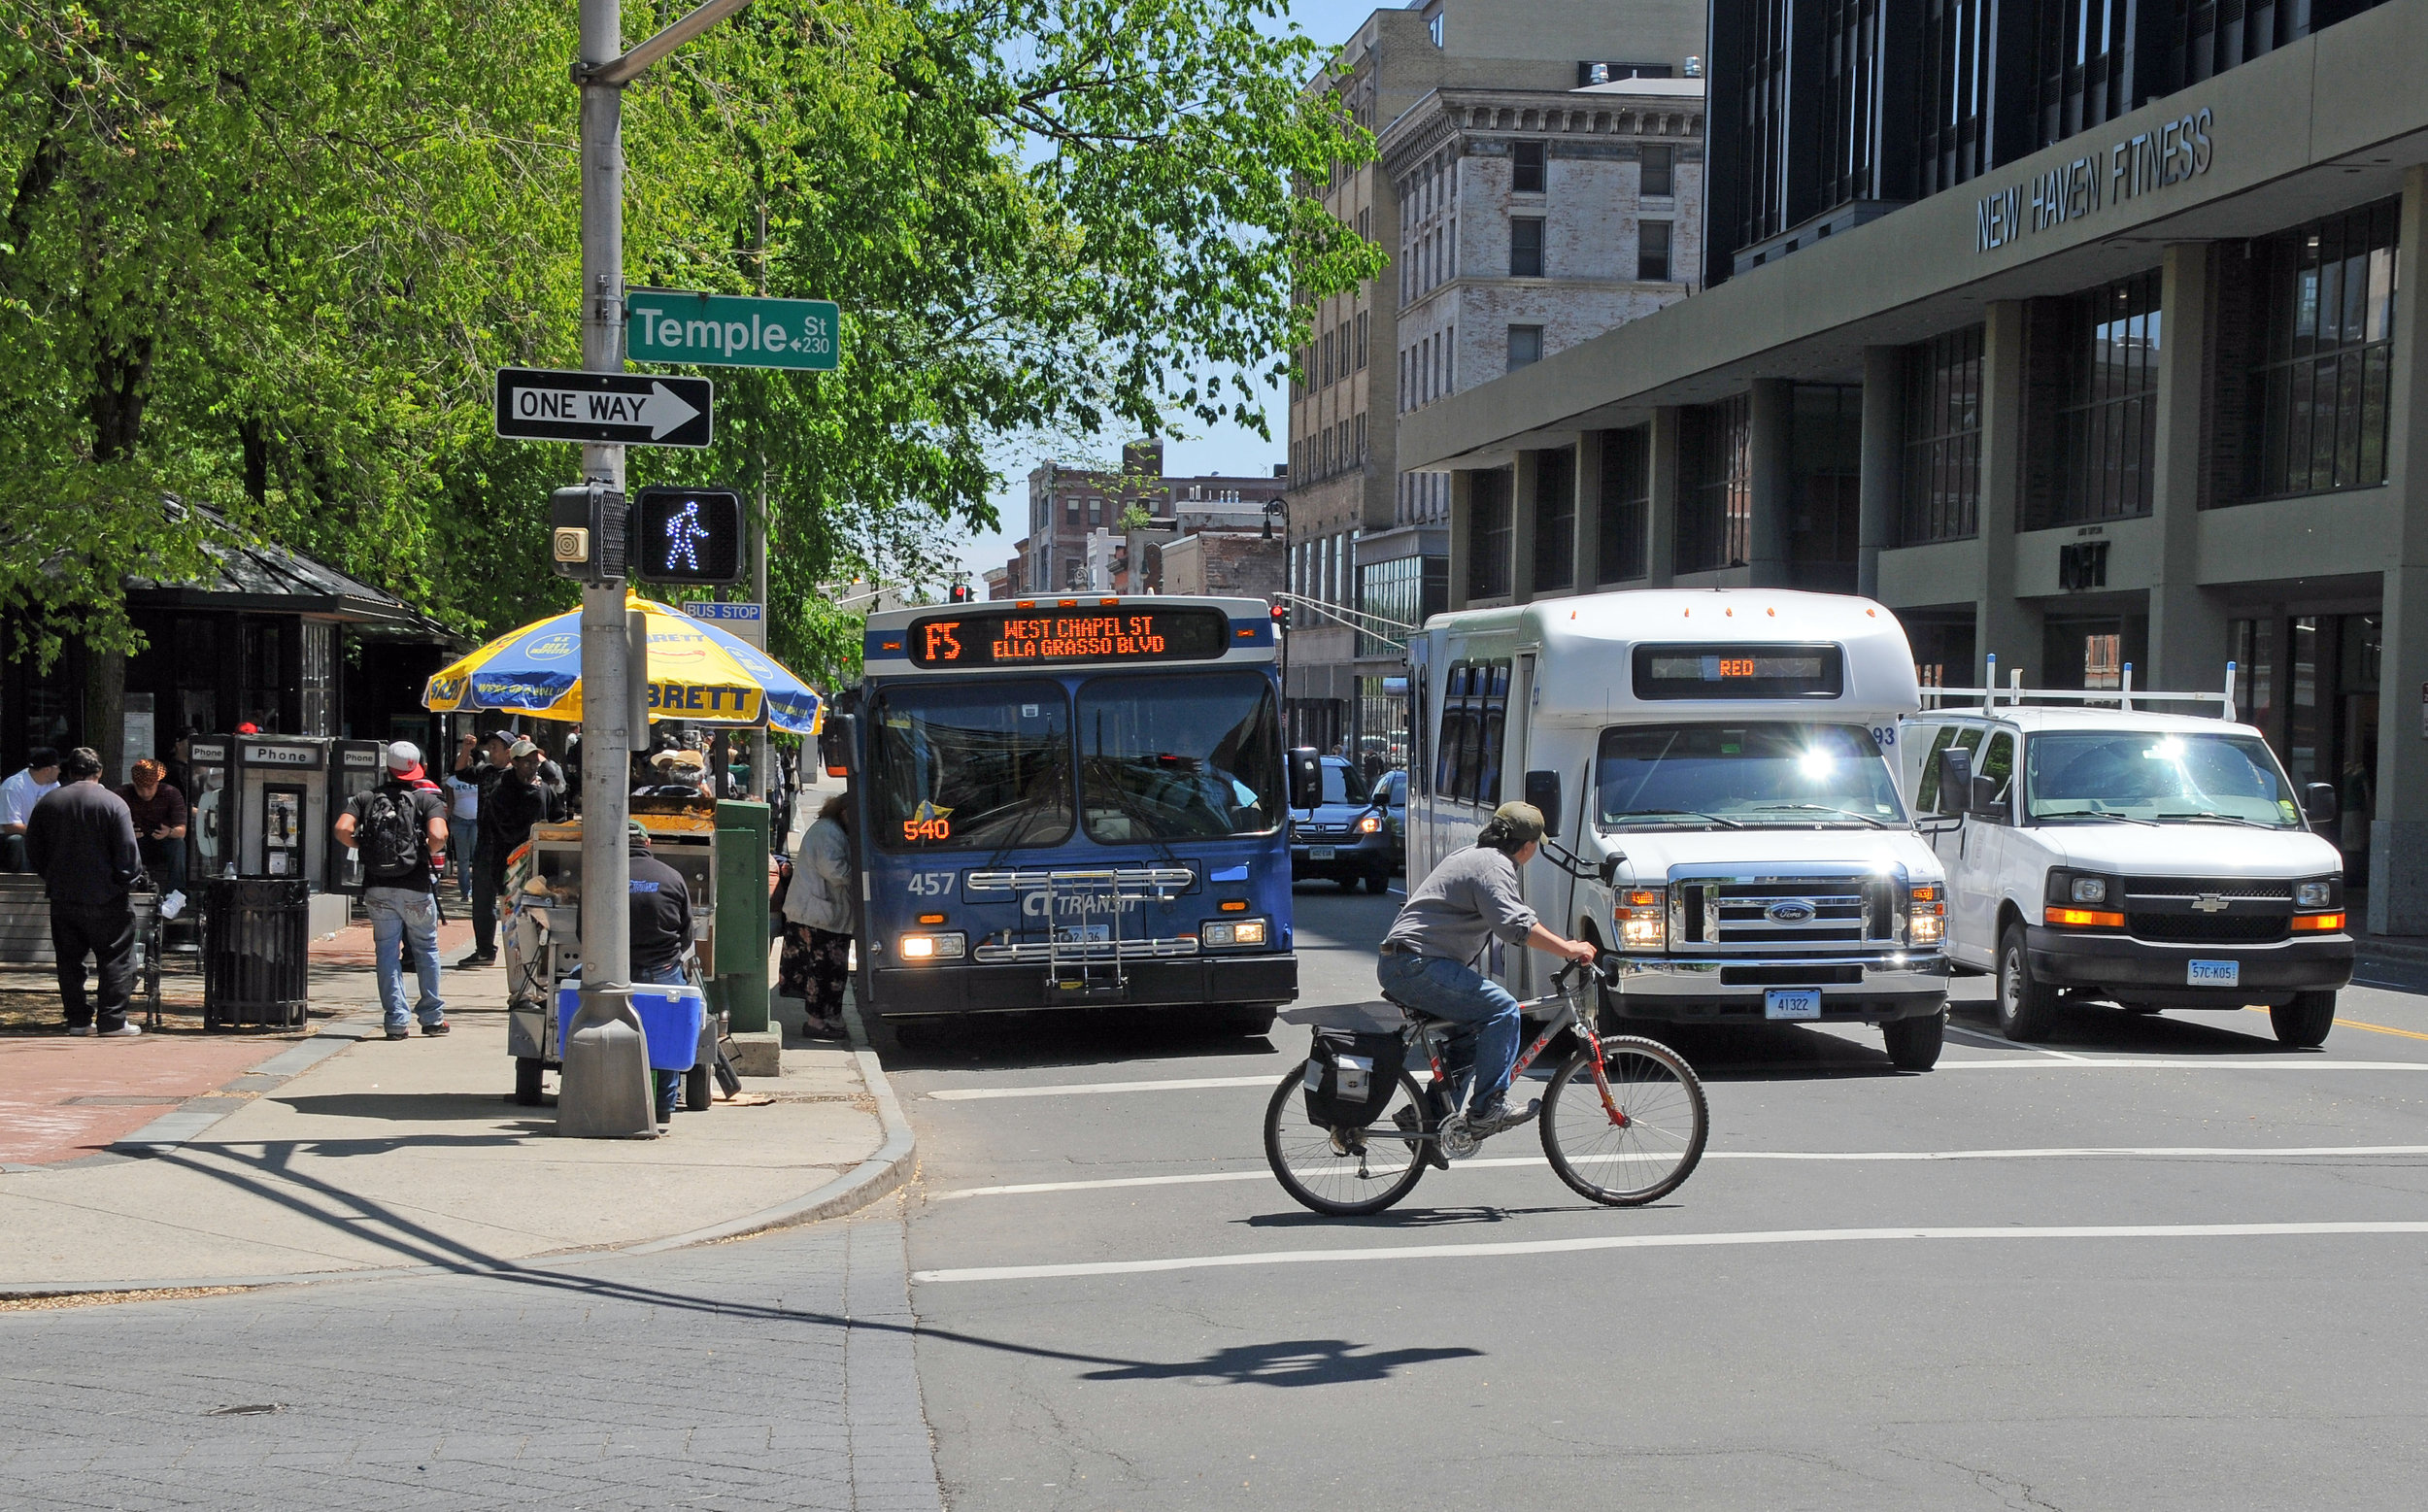 Temple Street Bus Stop & Bike.jpg